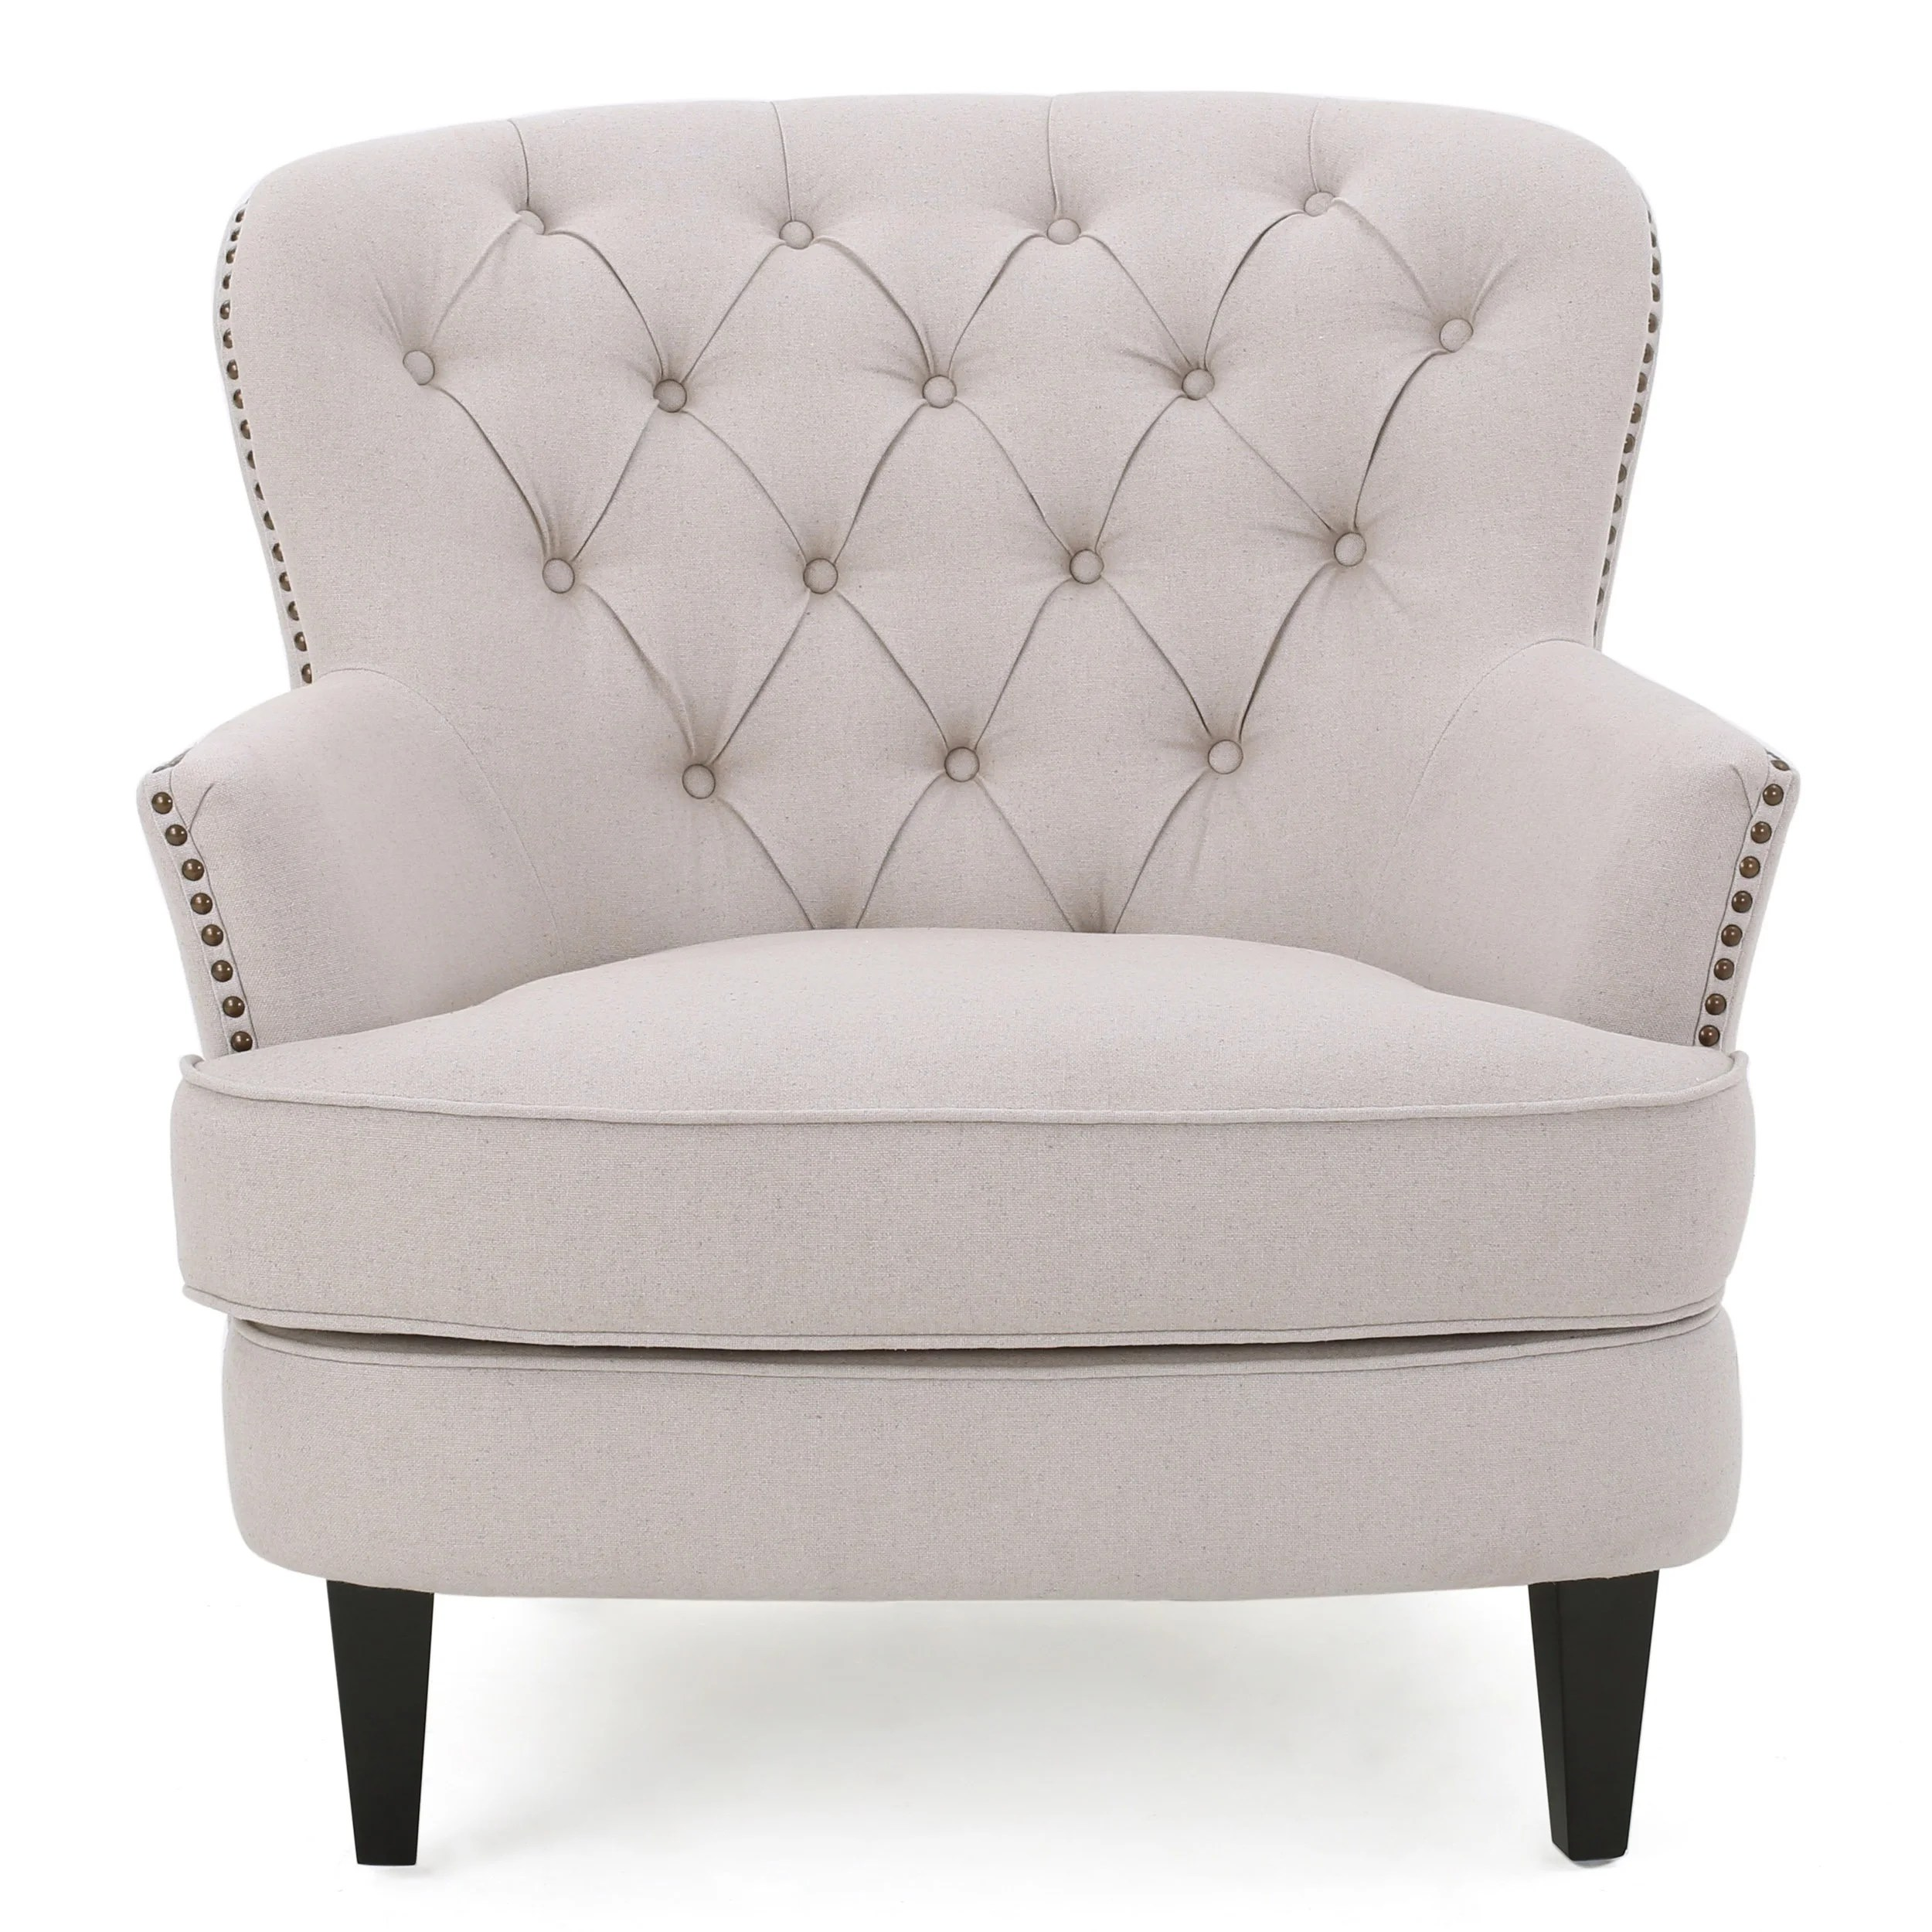 christopher knight club chair cool modern dining chairs tafton tufted fabric with ottoman by